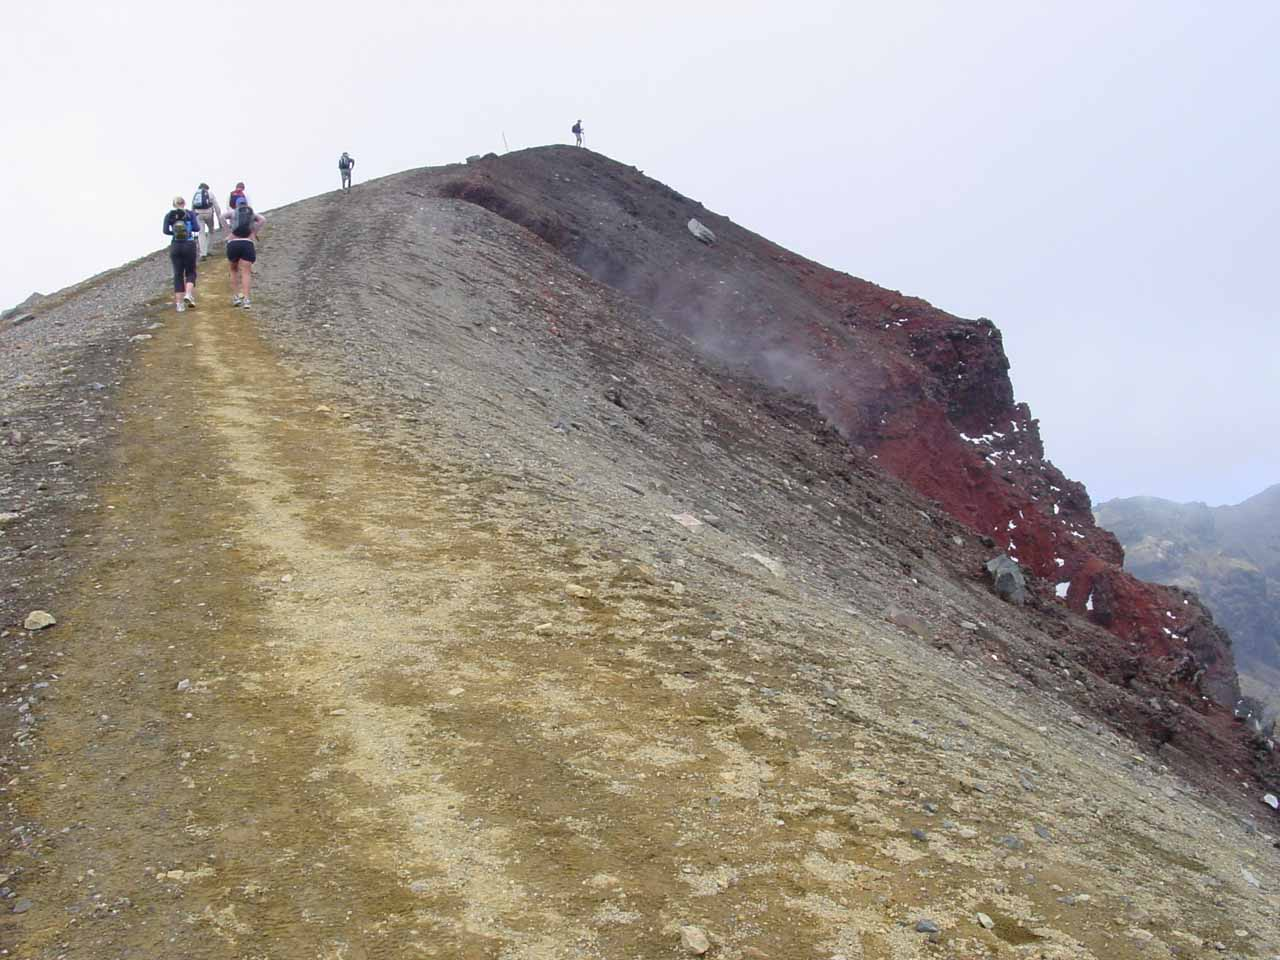 Climbing up the rim of the Red Crater